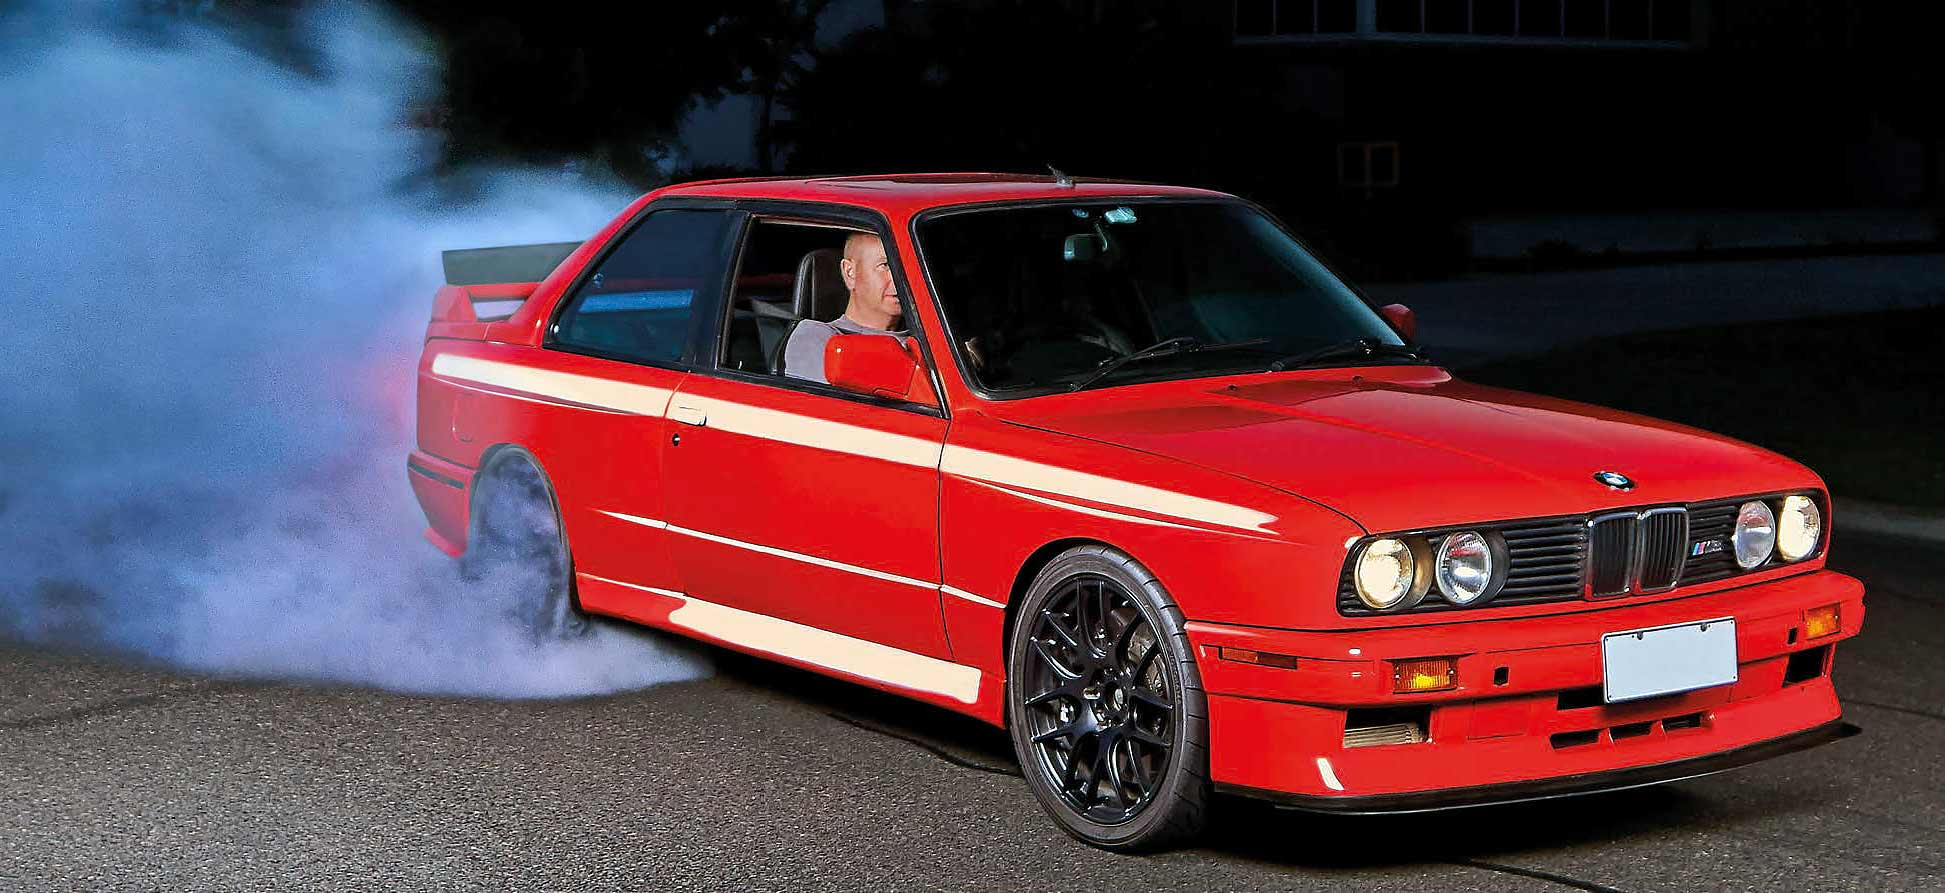 hight resolution of 500hp 5 8 litre s85b50 v10 swapped bmw e30 m3